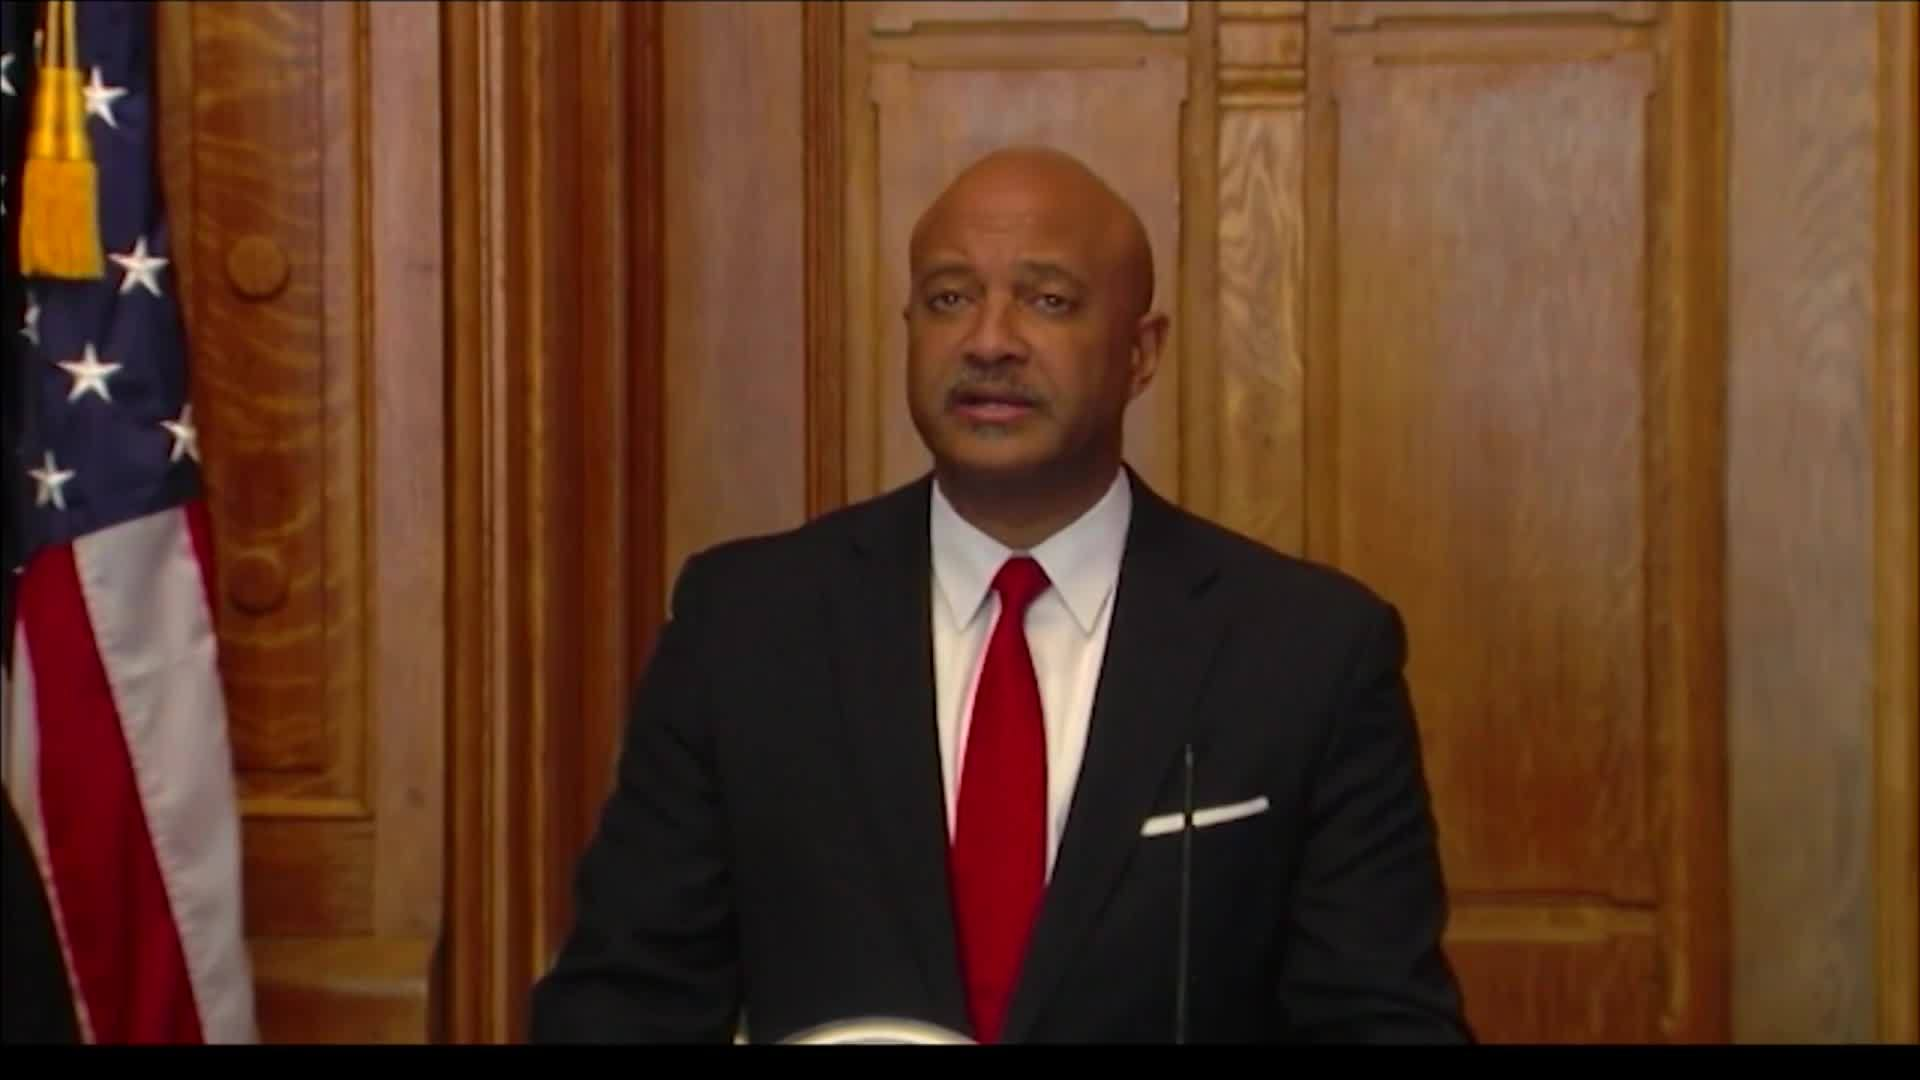 Indiana_Attorney_General_Curtis_Hill_to__8_20190506214036